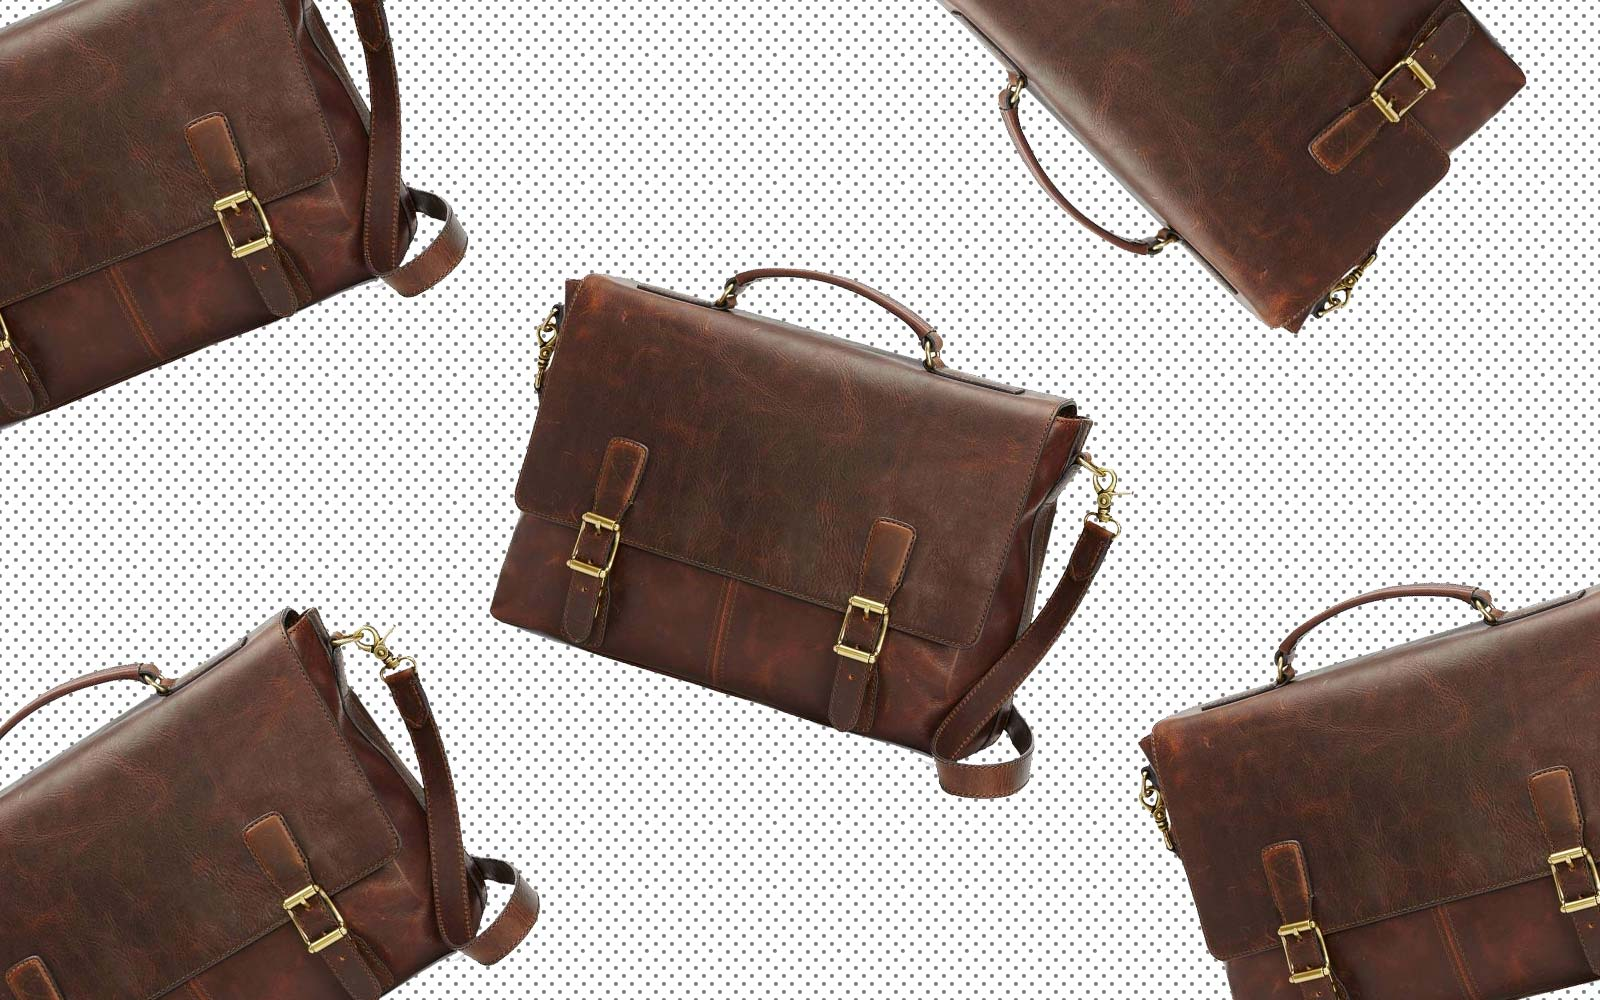 The Best Men's Leather Briefcase for Business Travel